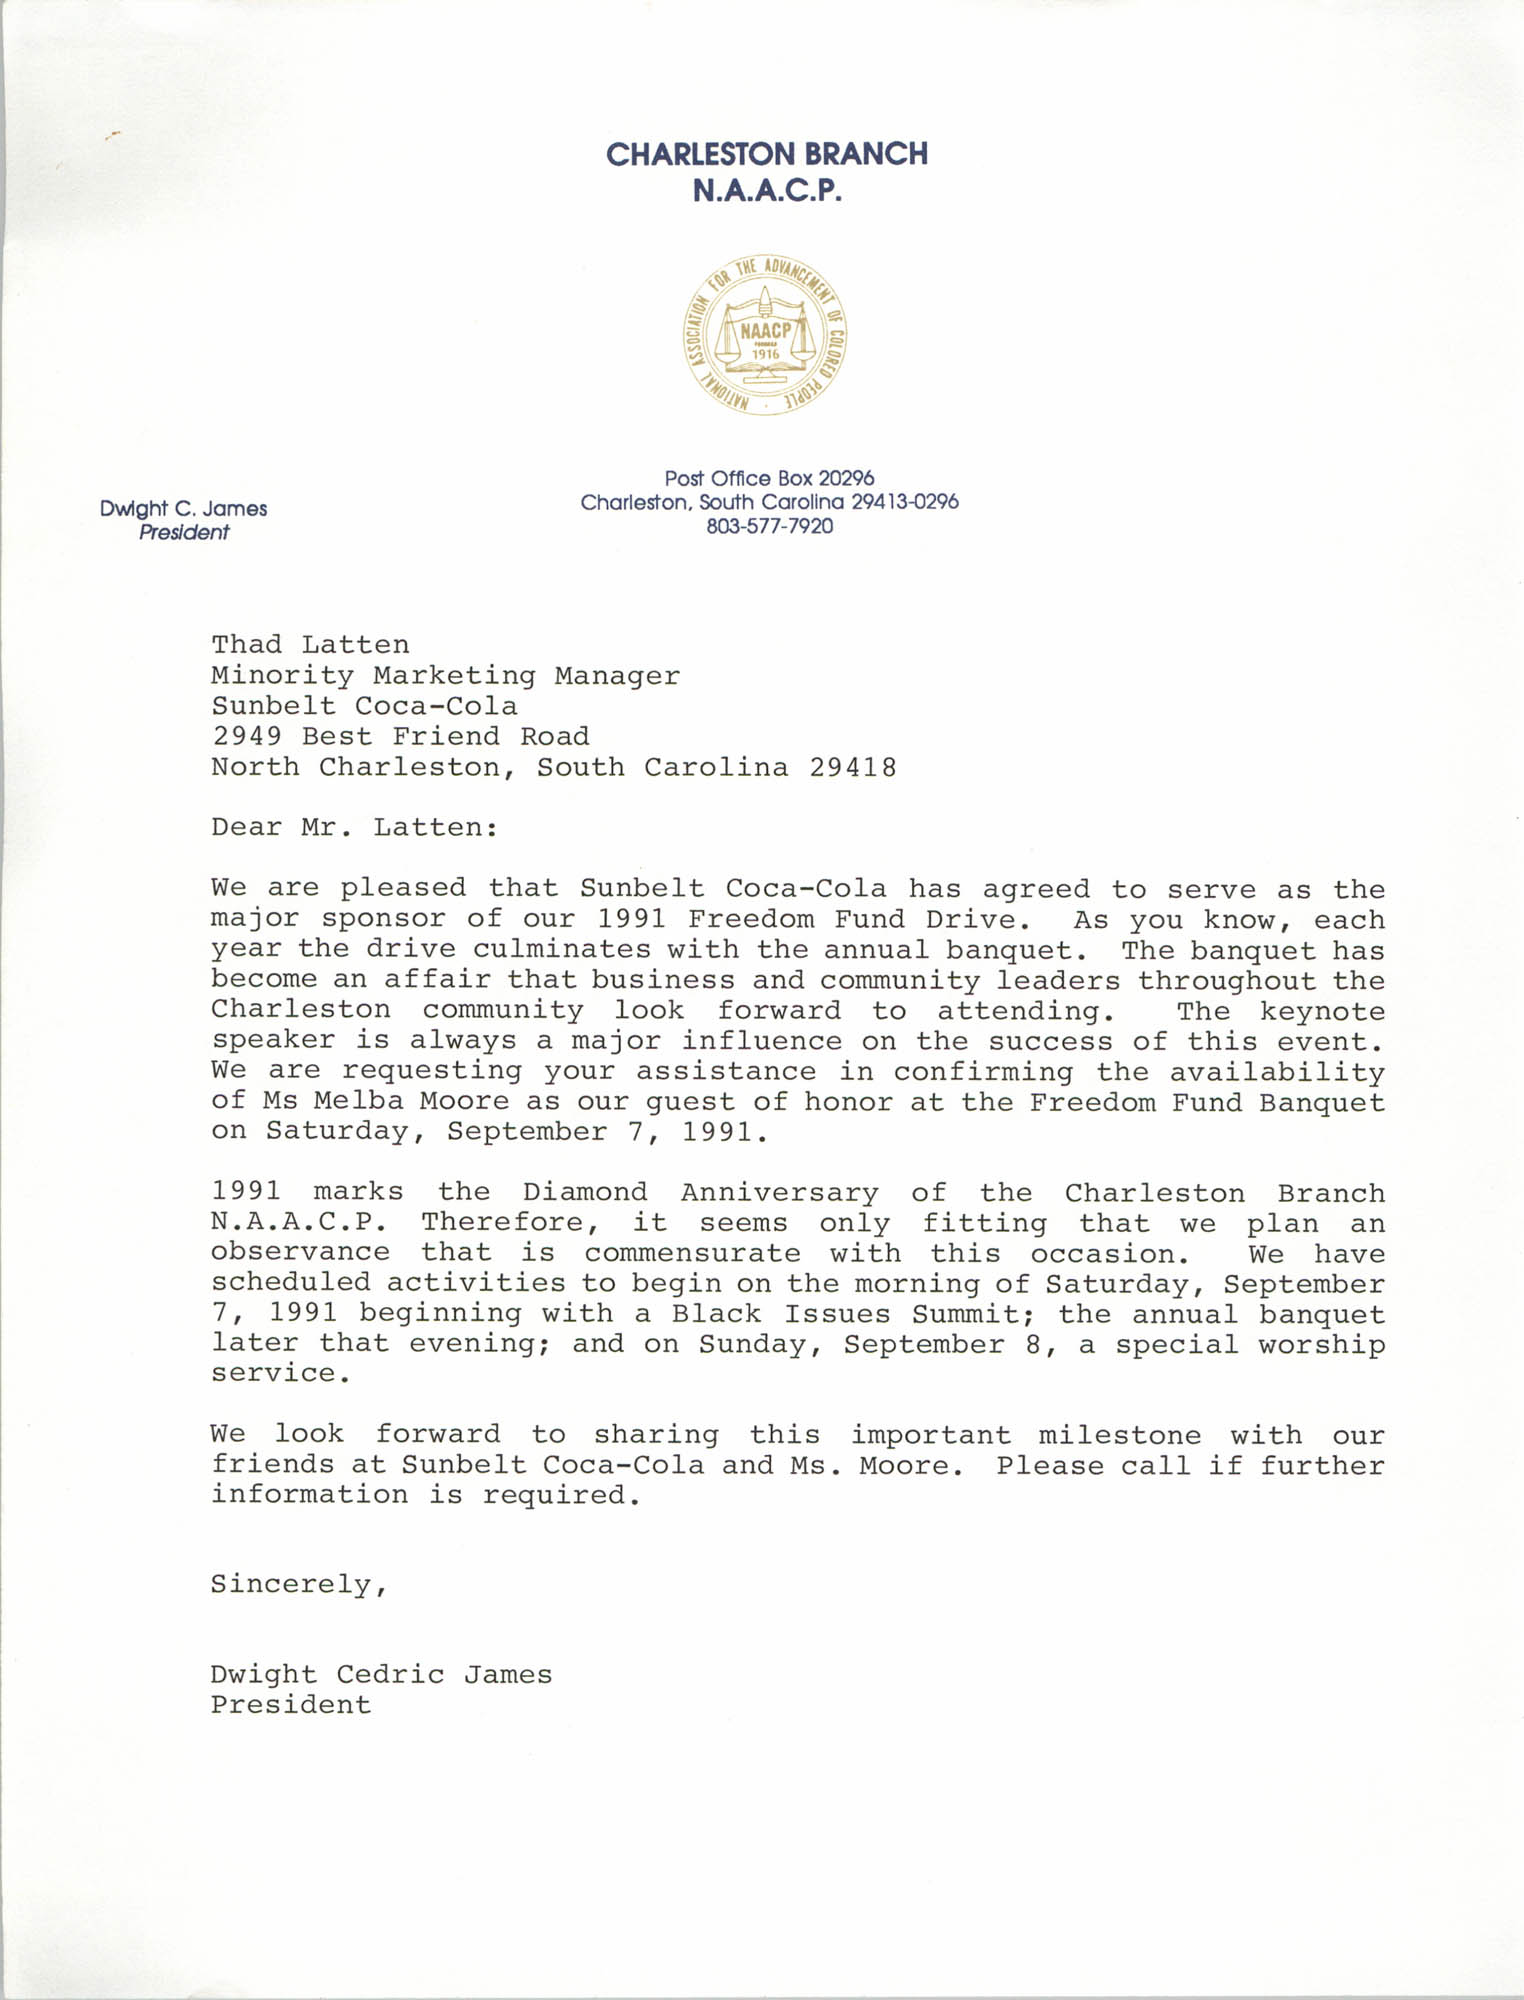 Letter from Dwight James to Thad Latten, 1991